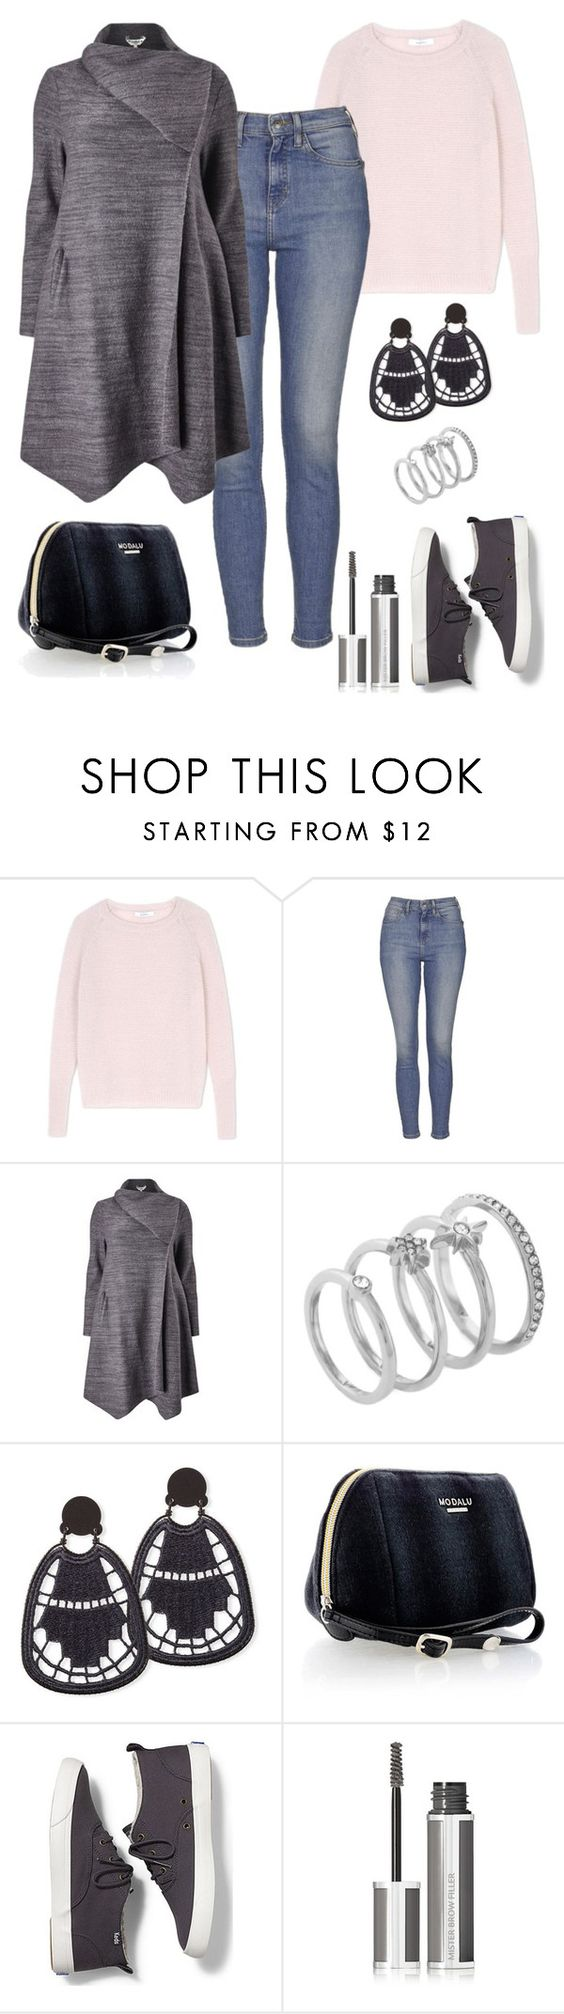 """""""Class."""" by schenonek ❤ liked on Polyvore featuring MaxMara, Topshop, Studio 8, Vince Camuto, Modalu, Keds and Givenchy"""